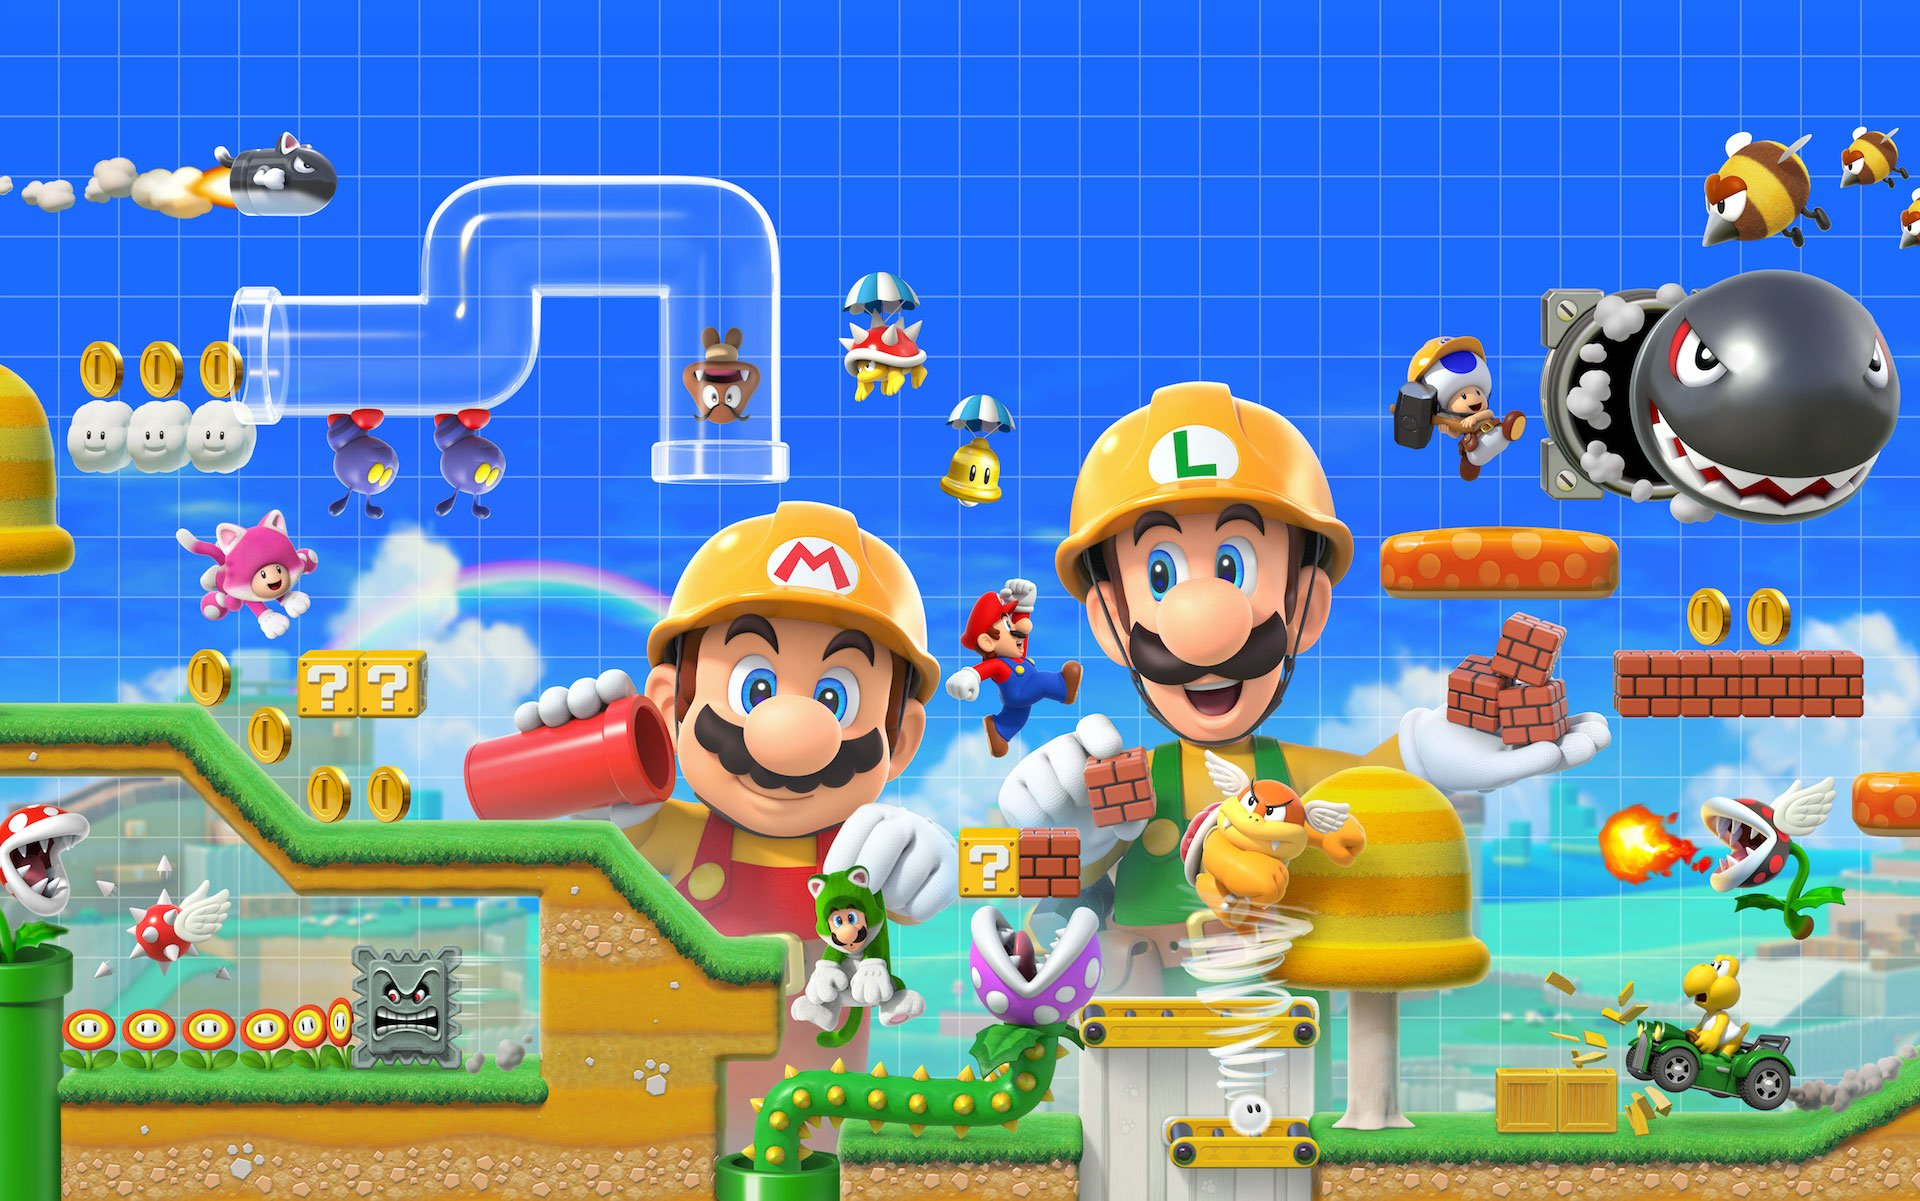 Nintendo backtracks on Super Mario Maker 2 restrictions, will allow friends to play together online screenshot